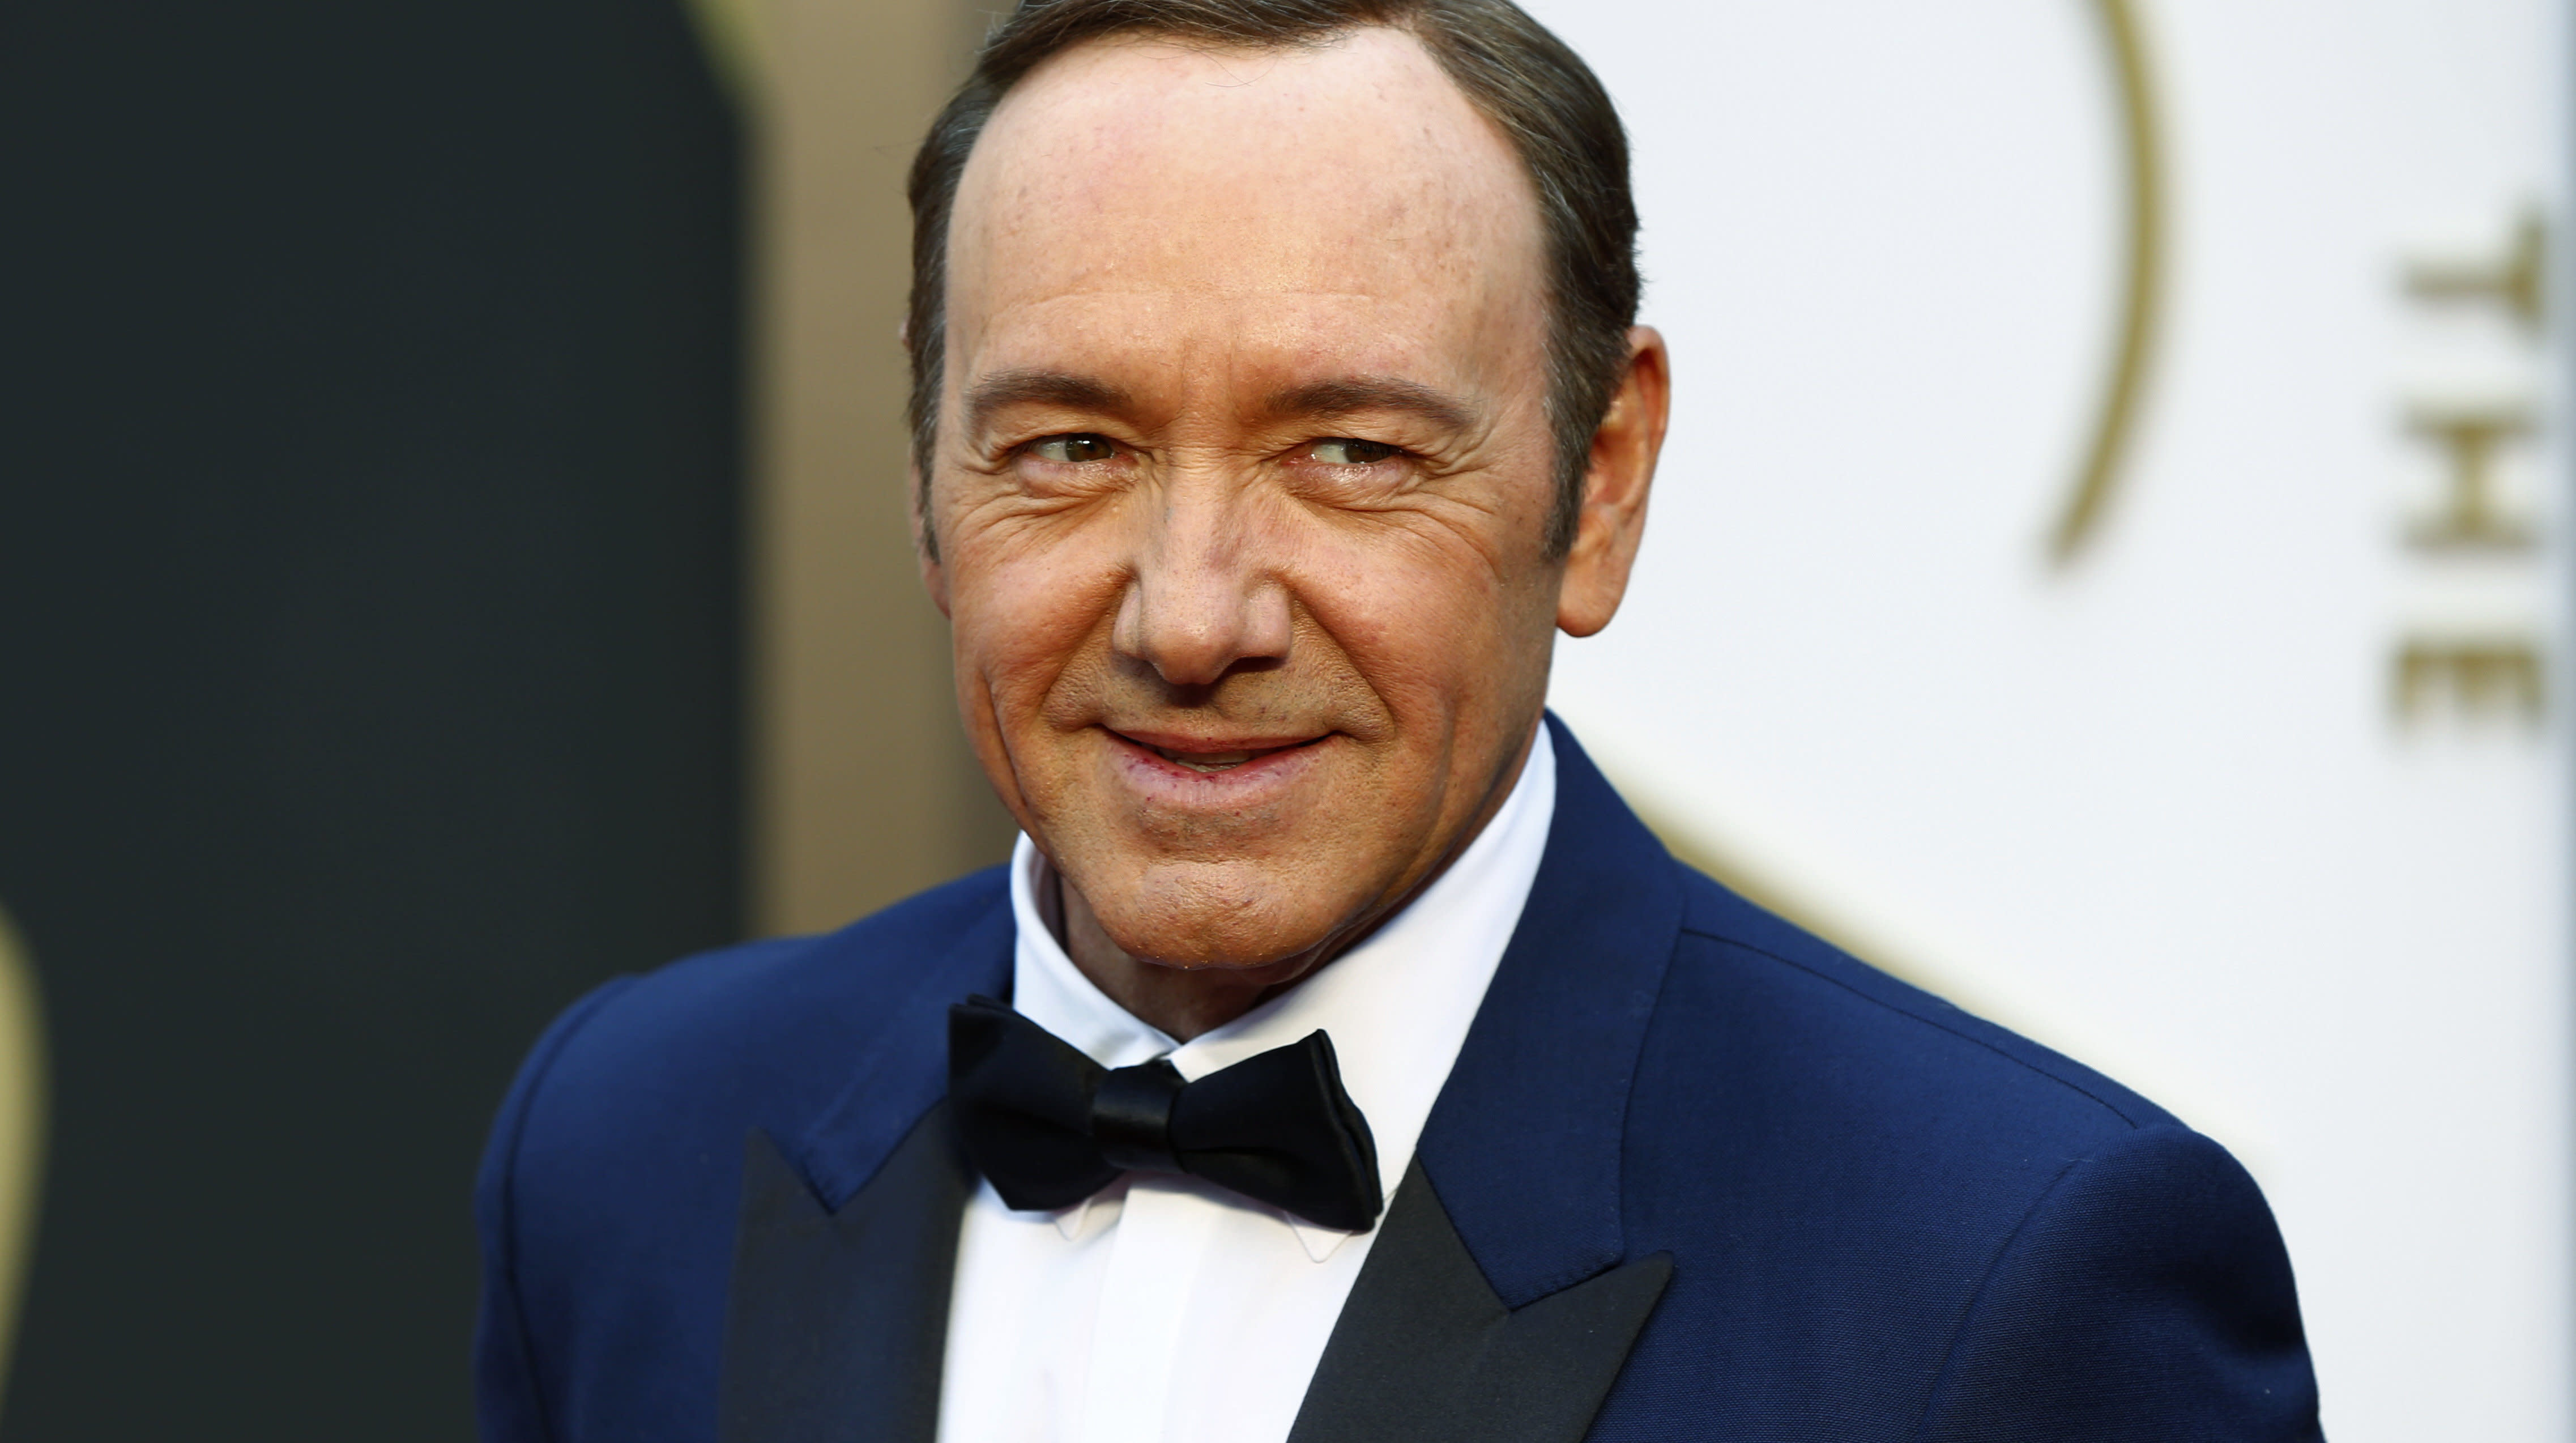 Kevin Spacey's First Movie Since #MeToo Earned Just $126 On Opening Day